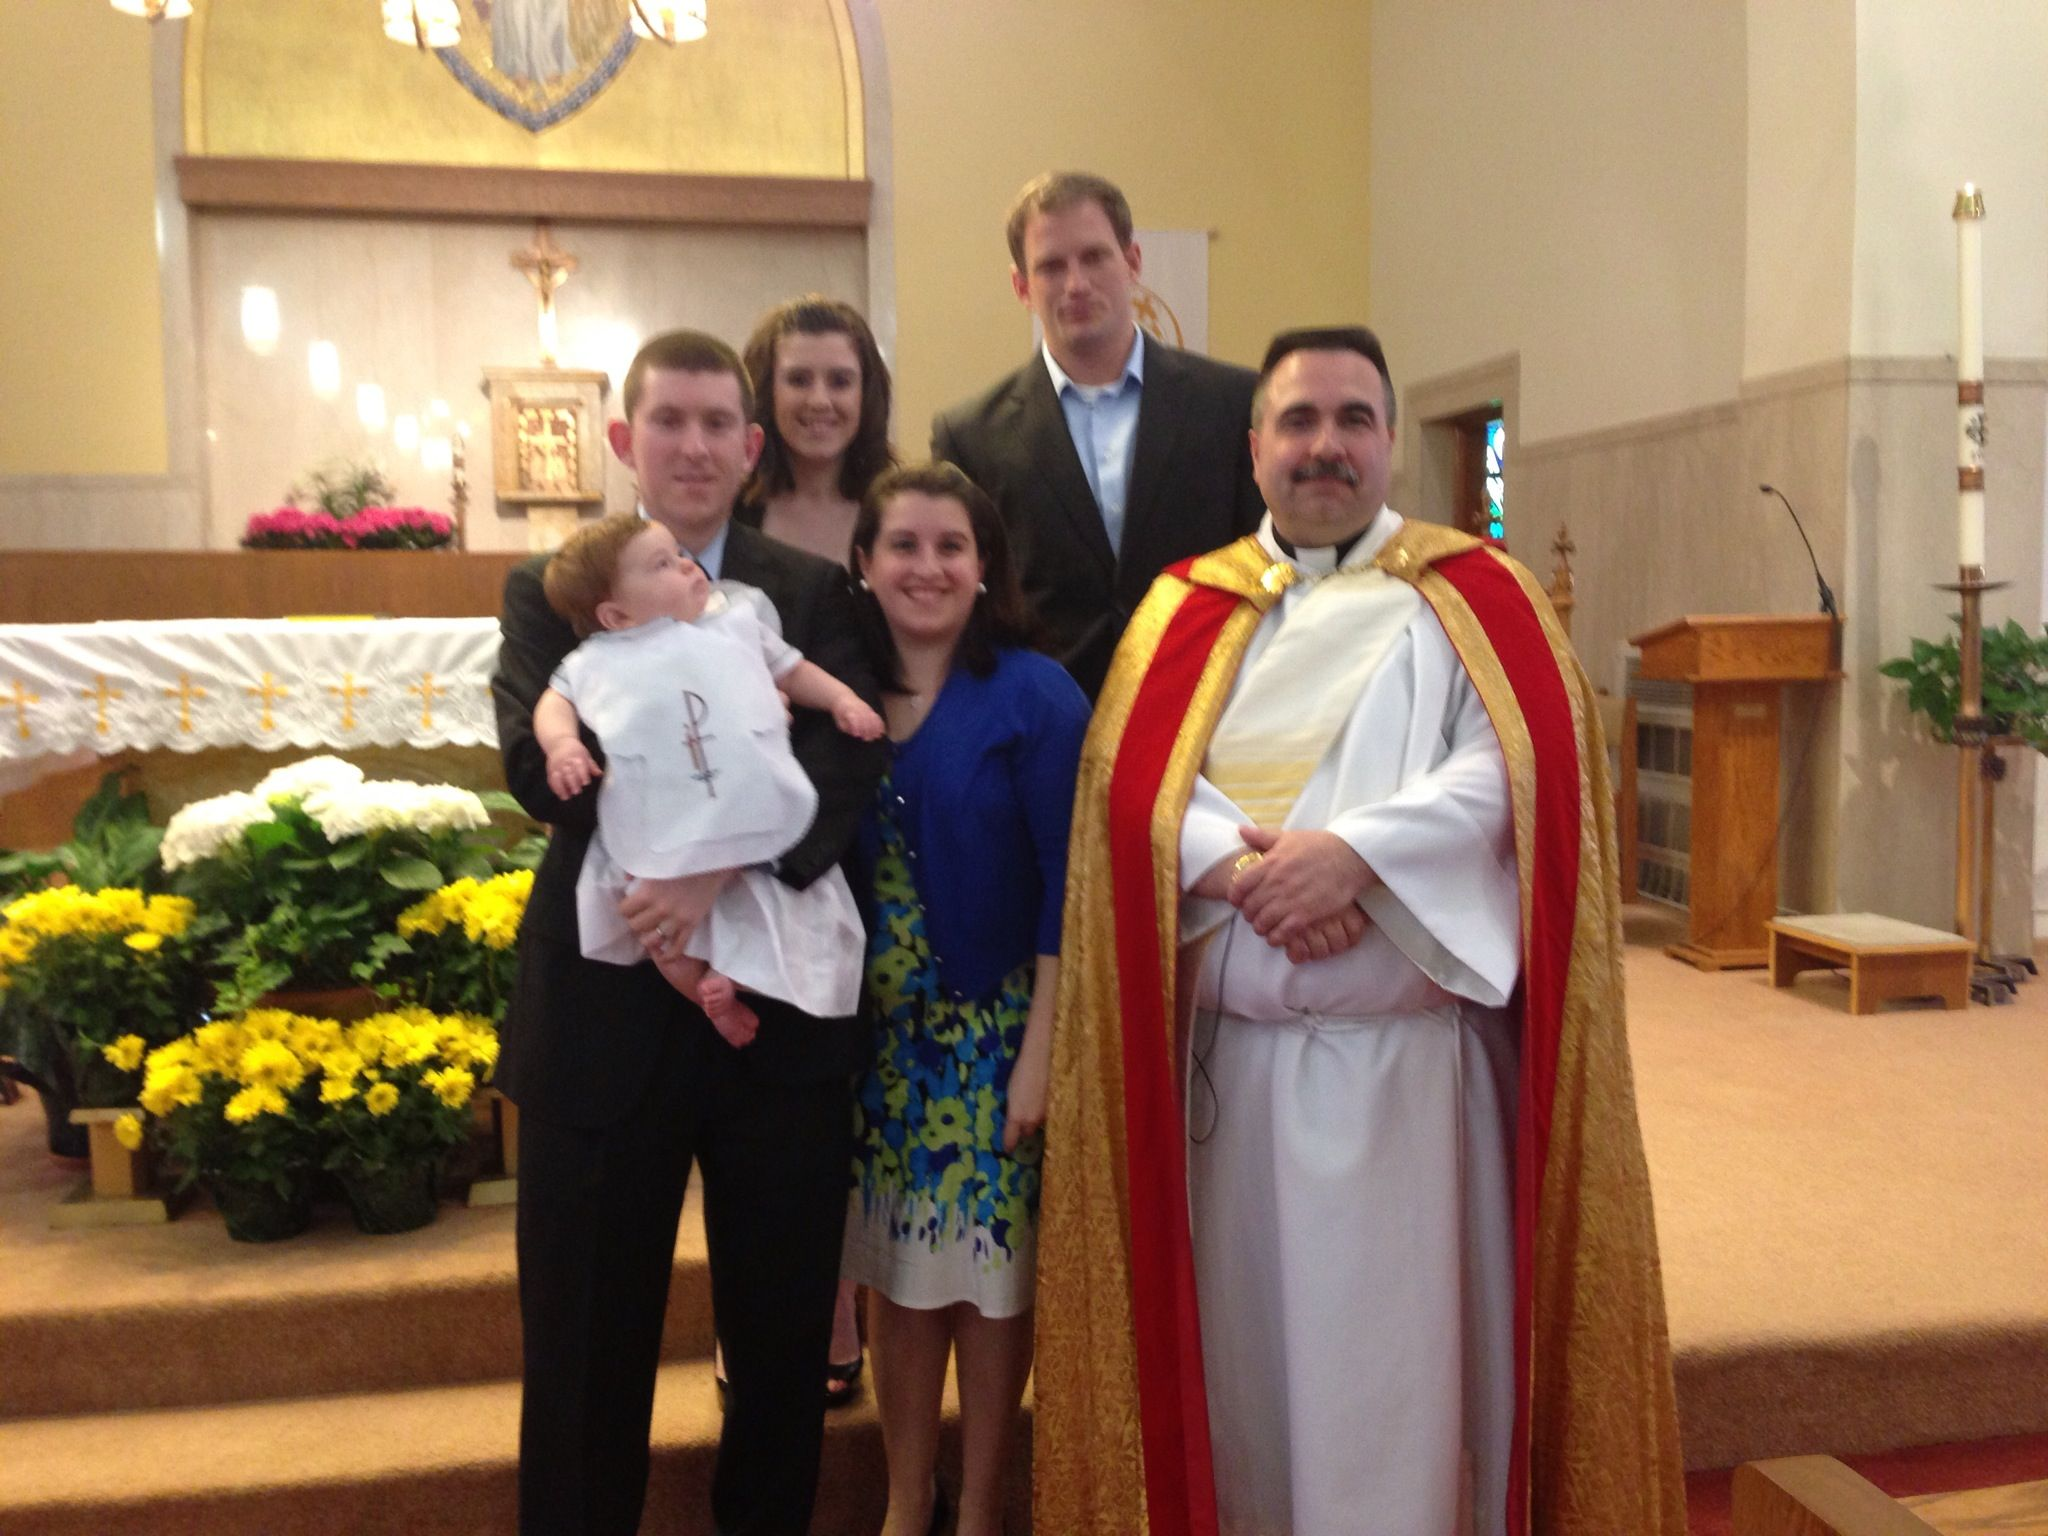 (10) Matthew Patrick O'Dowd. Baptized 4/14/2013. St Margaret Church Burlington MA. Parents Sean and Melissa.